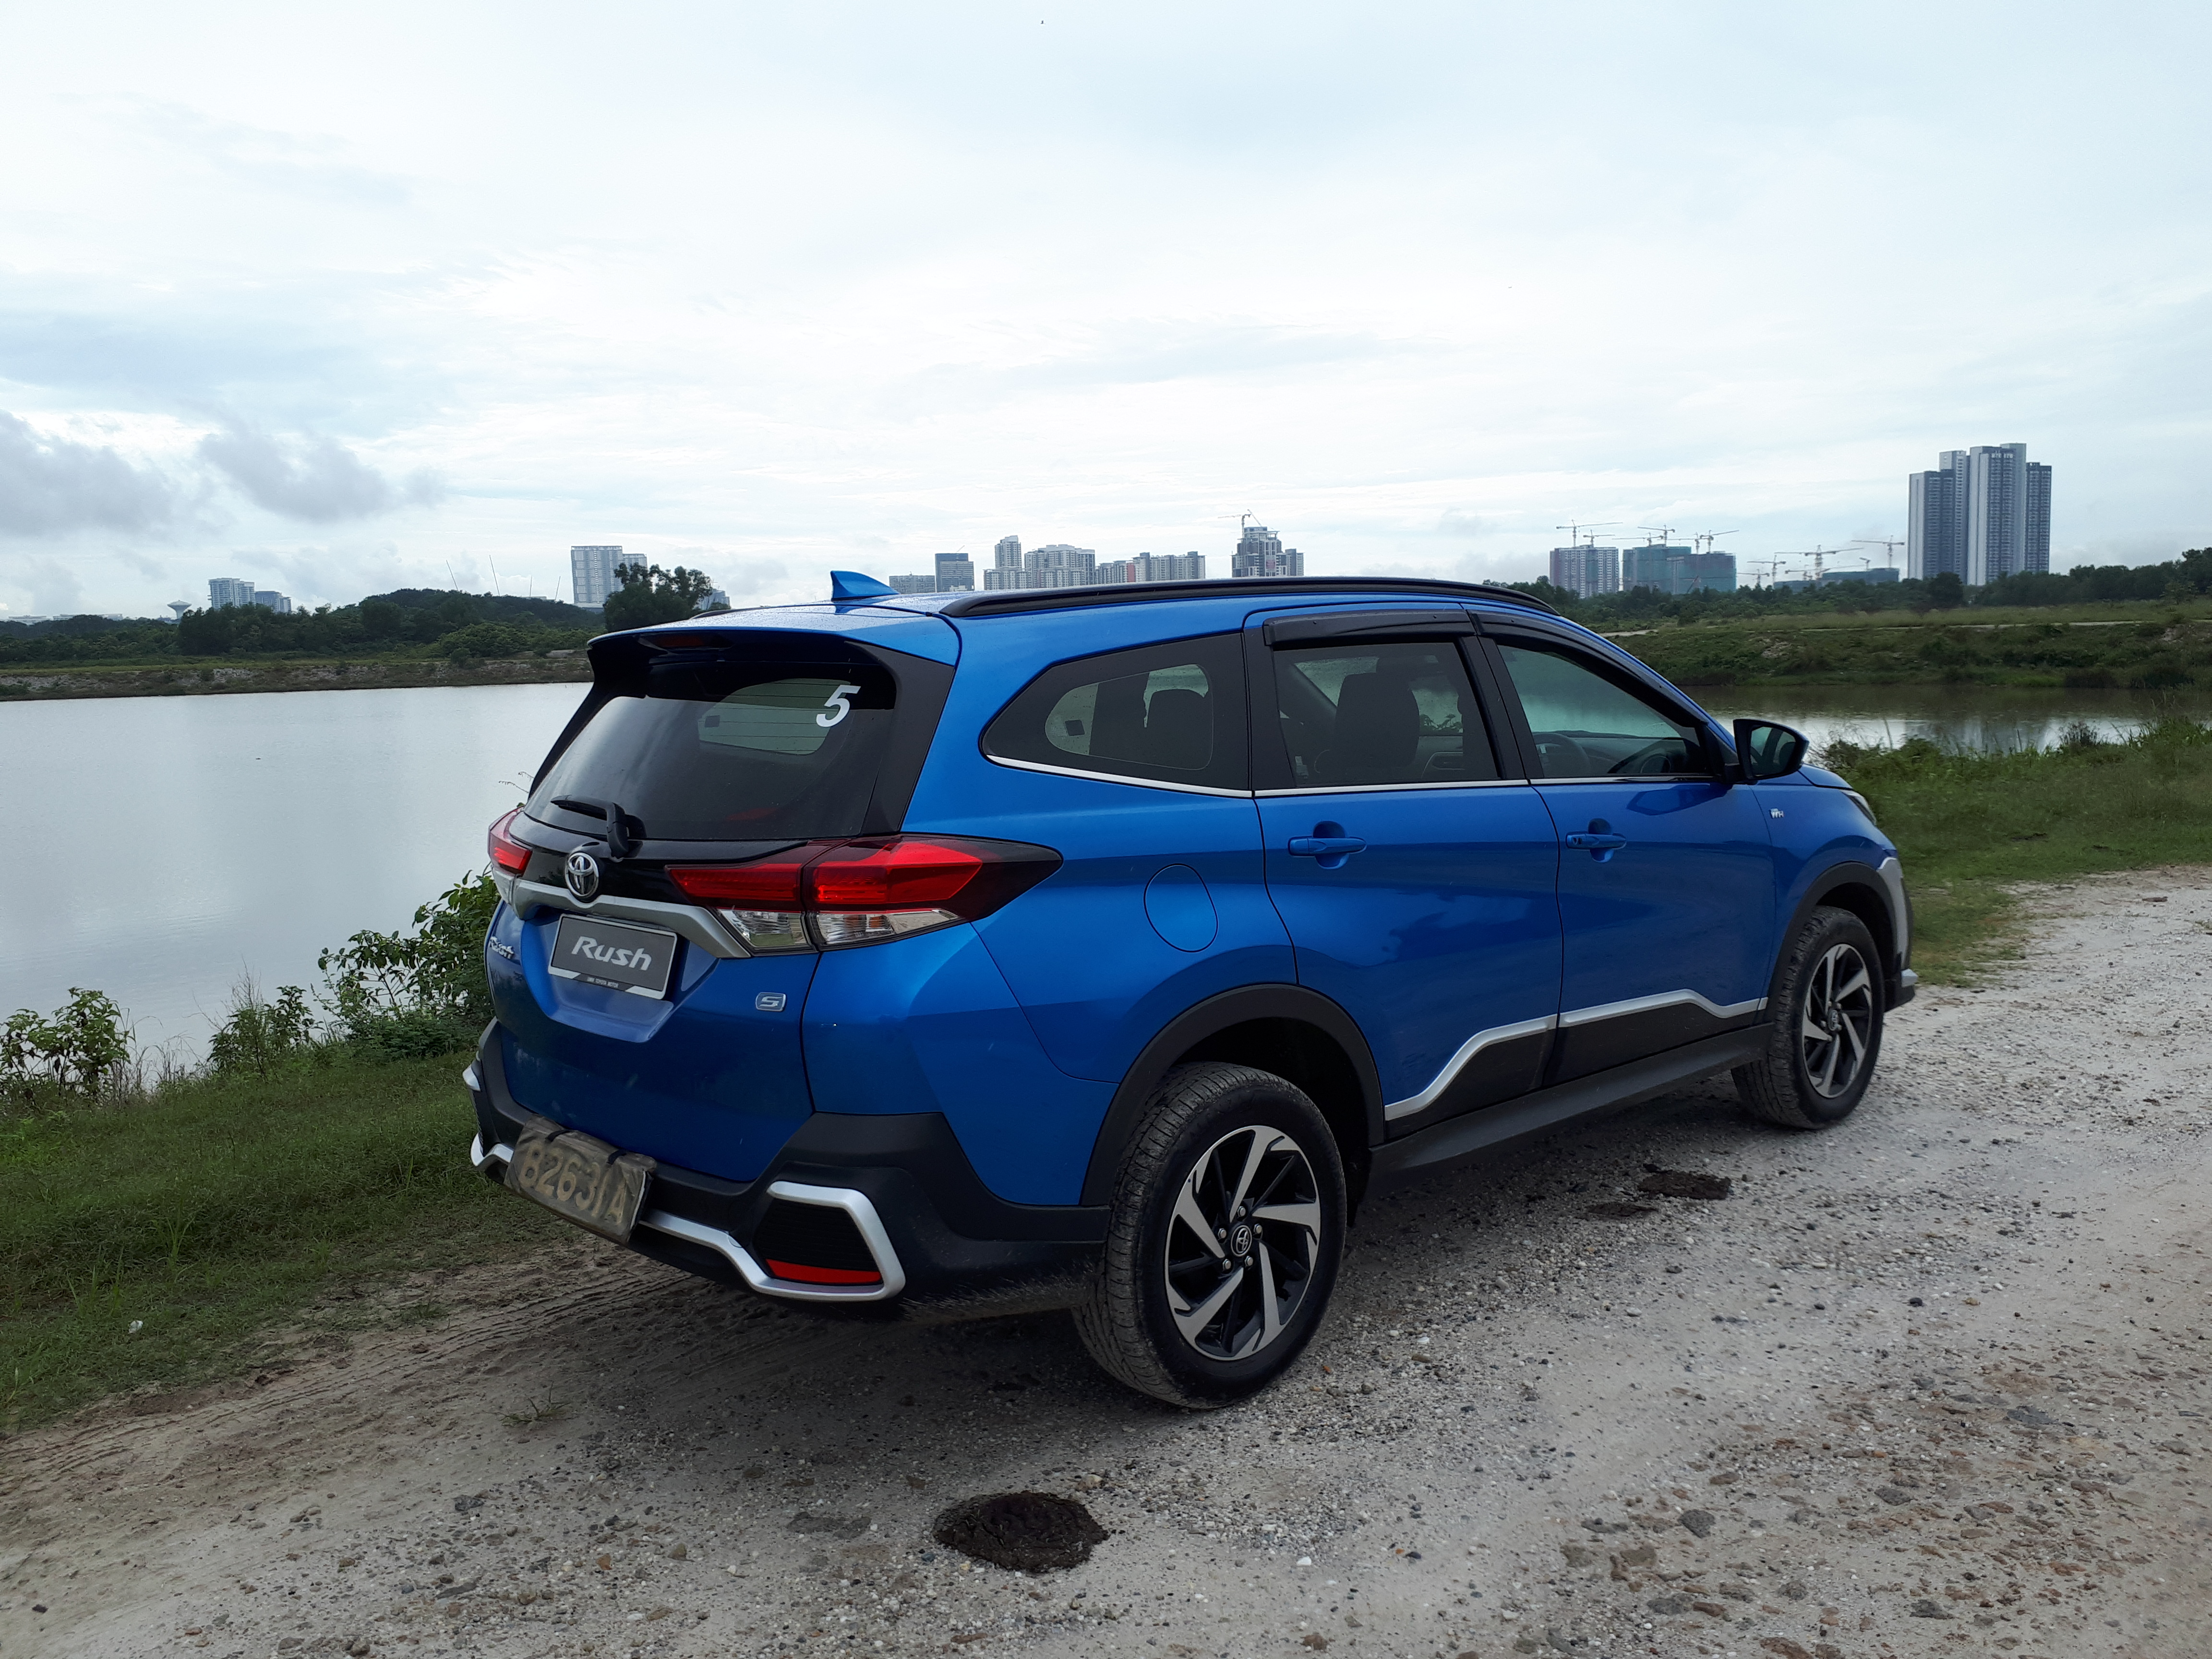 Feature All New 2019 Toyota Rush Suv Launched Videos Piston My